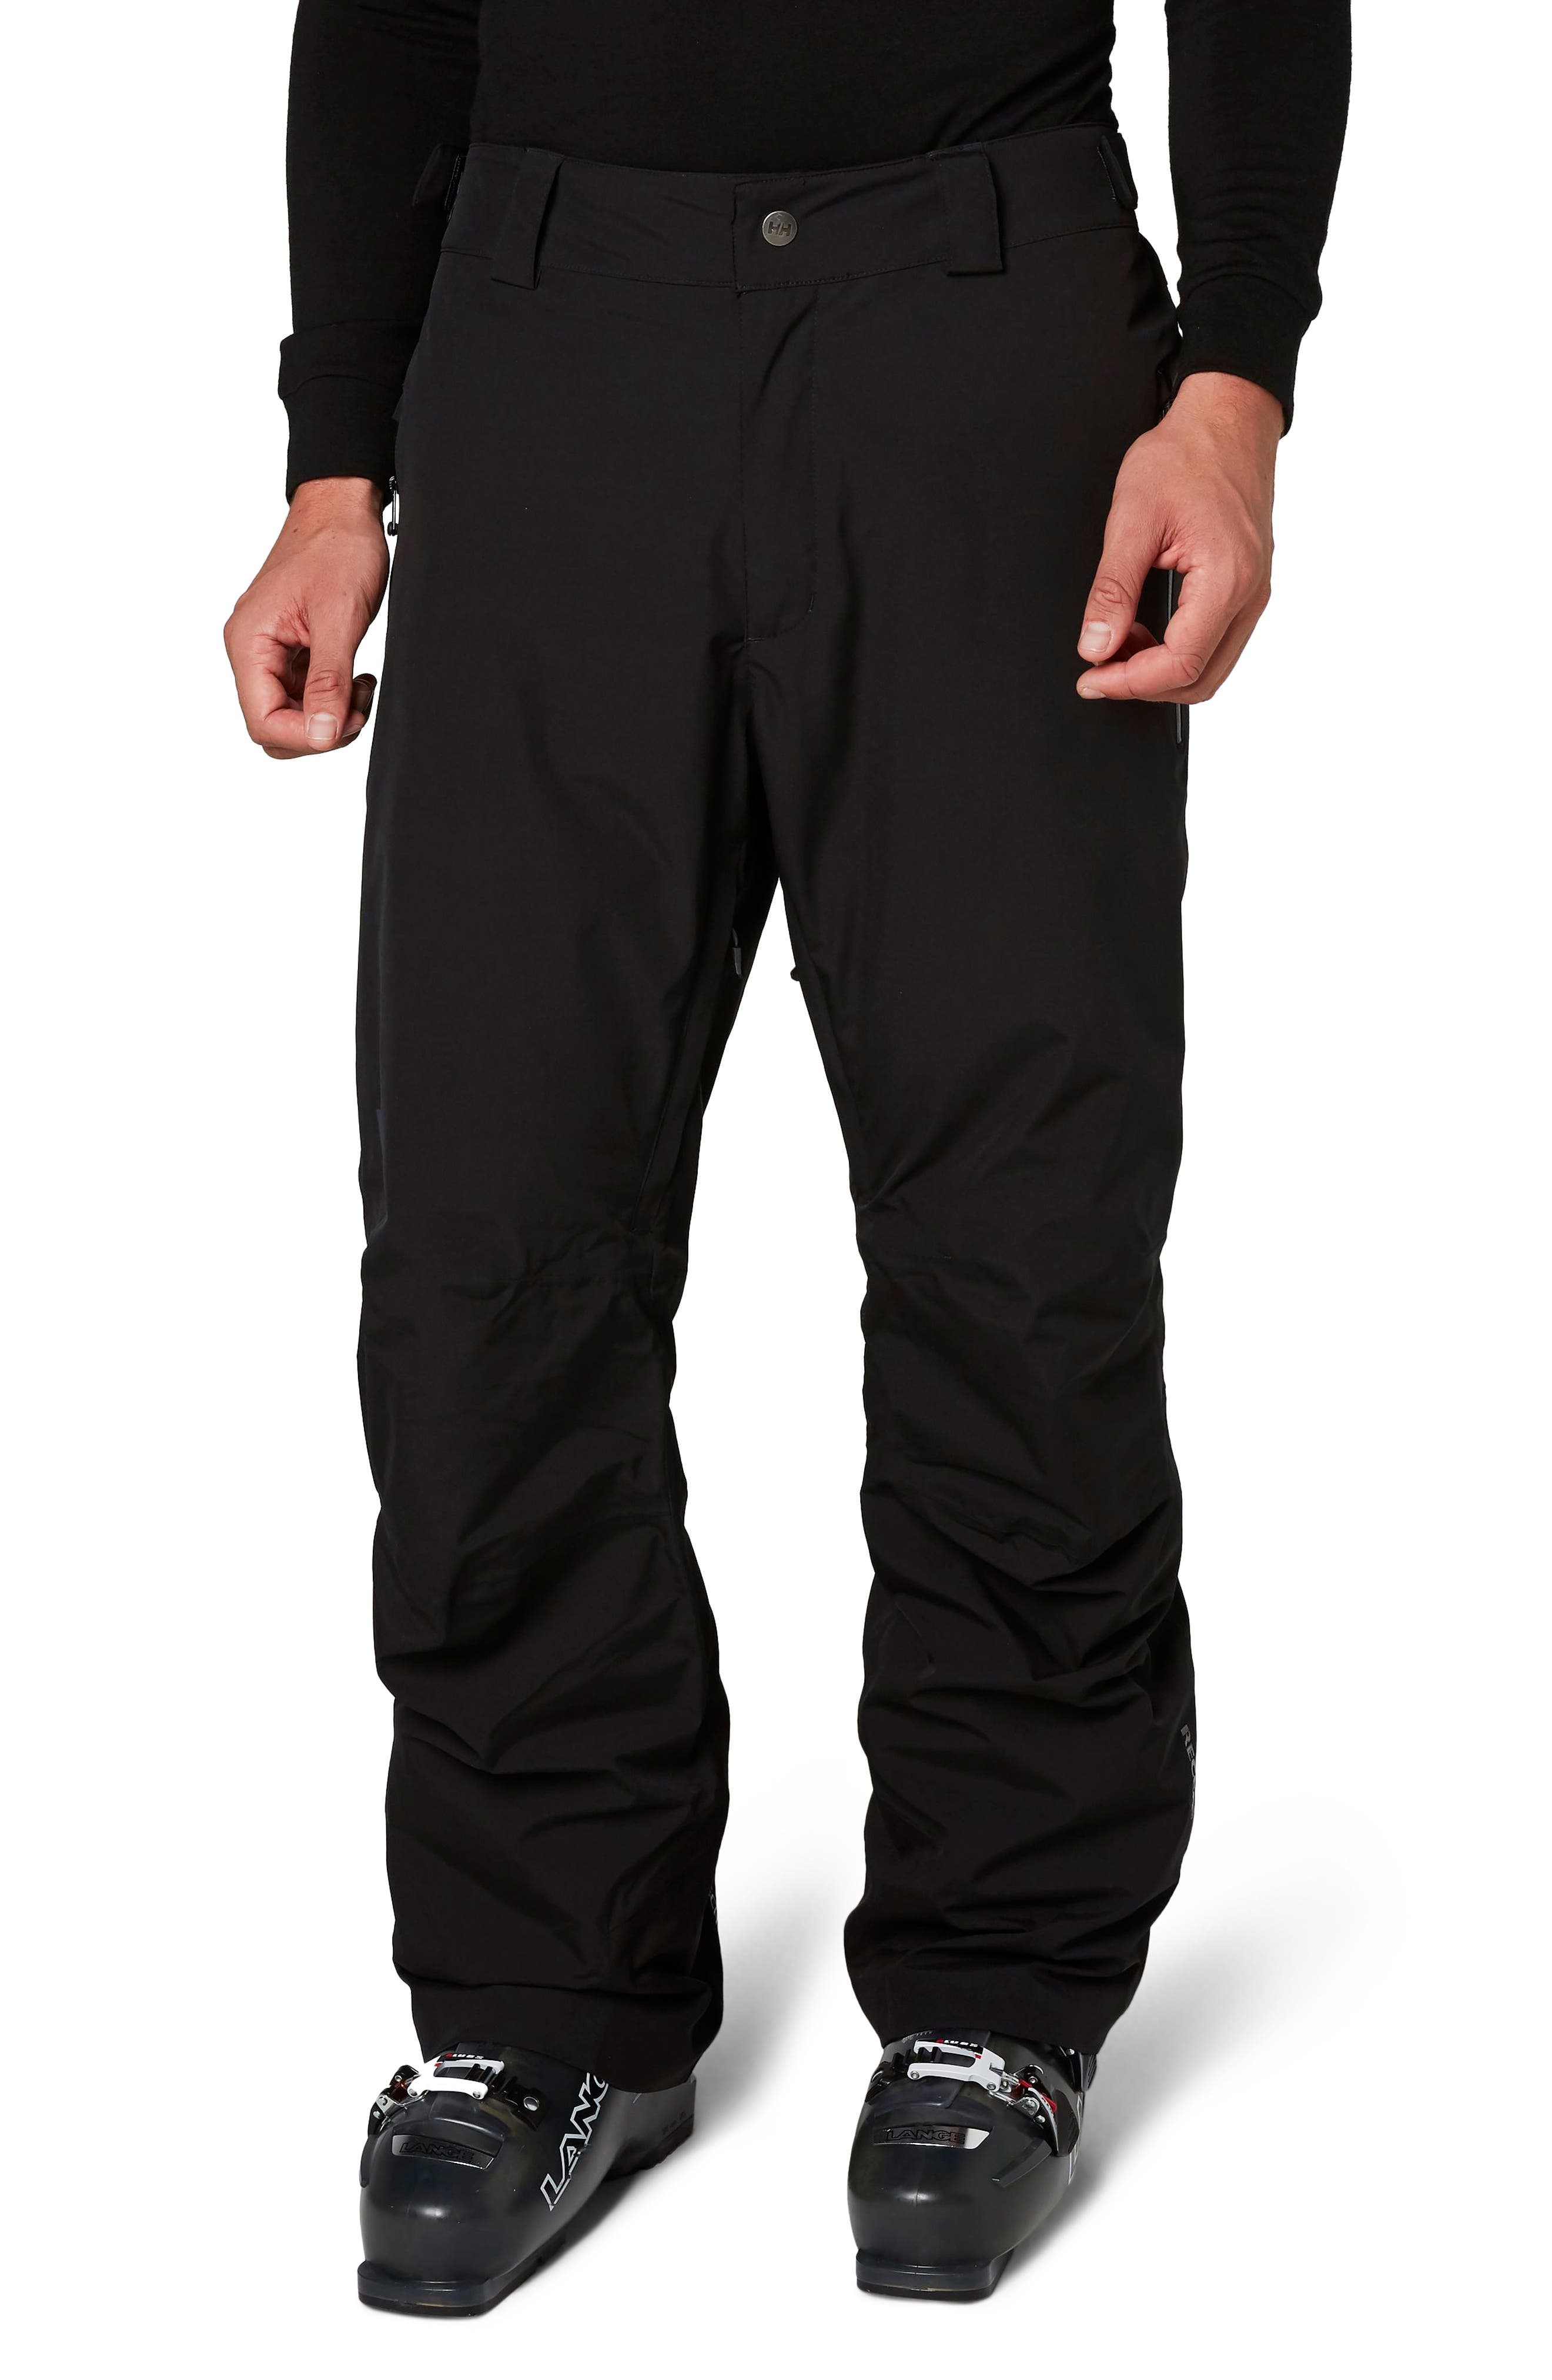 Main Image - Helly Hansen Legendary - Short Waterproof PrimaLoft Insulated Snow Pants